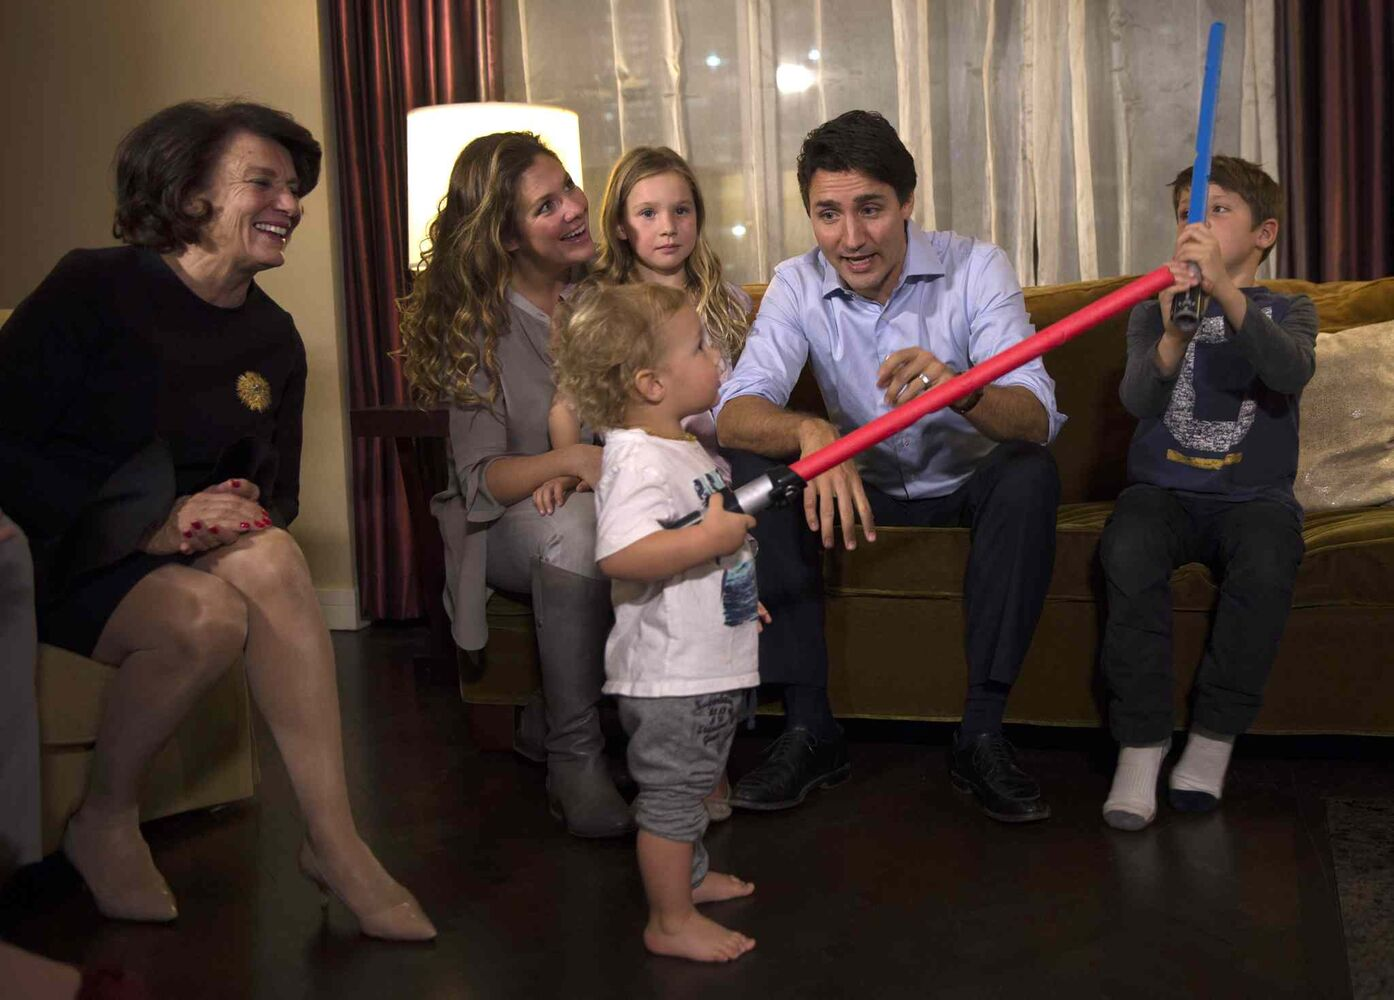 Liberal leader Justin Trudeau watches the results with his wife Sophie Gregoire, son Xavier (right) daughter Ella-Grace and son Hadrien and mother Margaret Trudeau at a hotel in downtown Montreal on Monday, Oct. 19, 2015.  (Paul Chiasson / The Canadian Press)